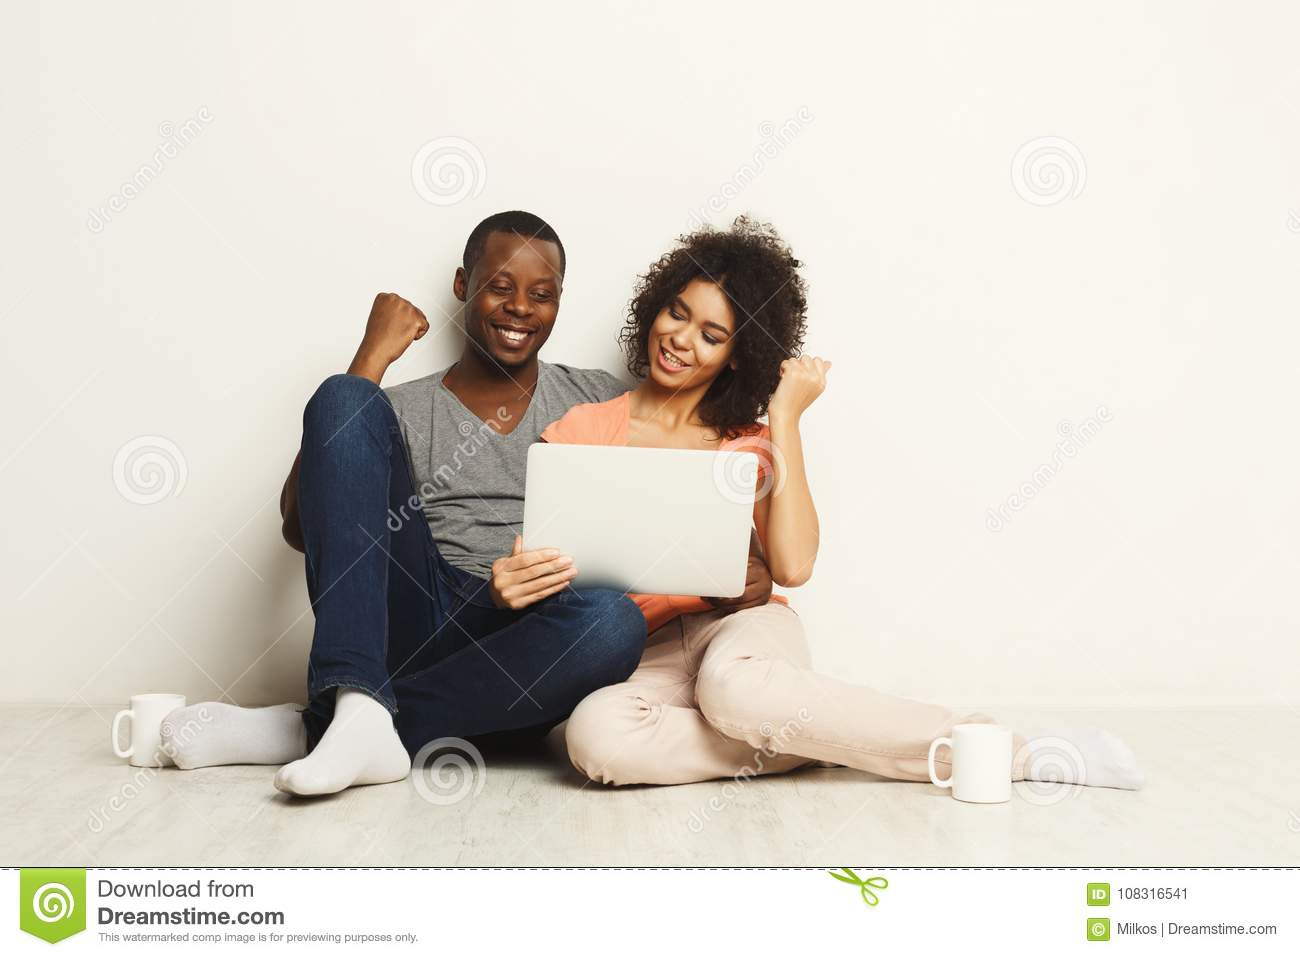 Successful black couple winning in online game